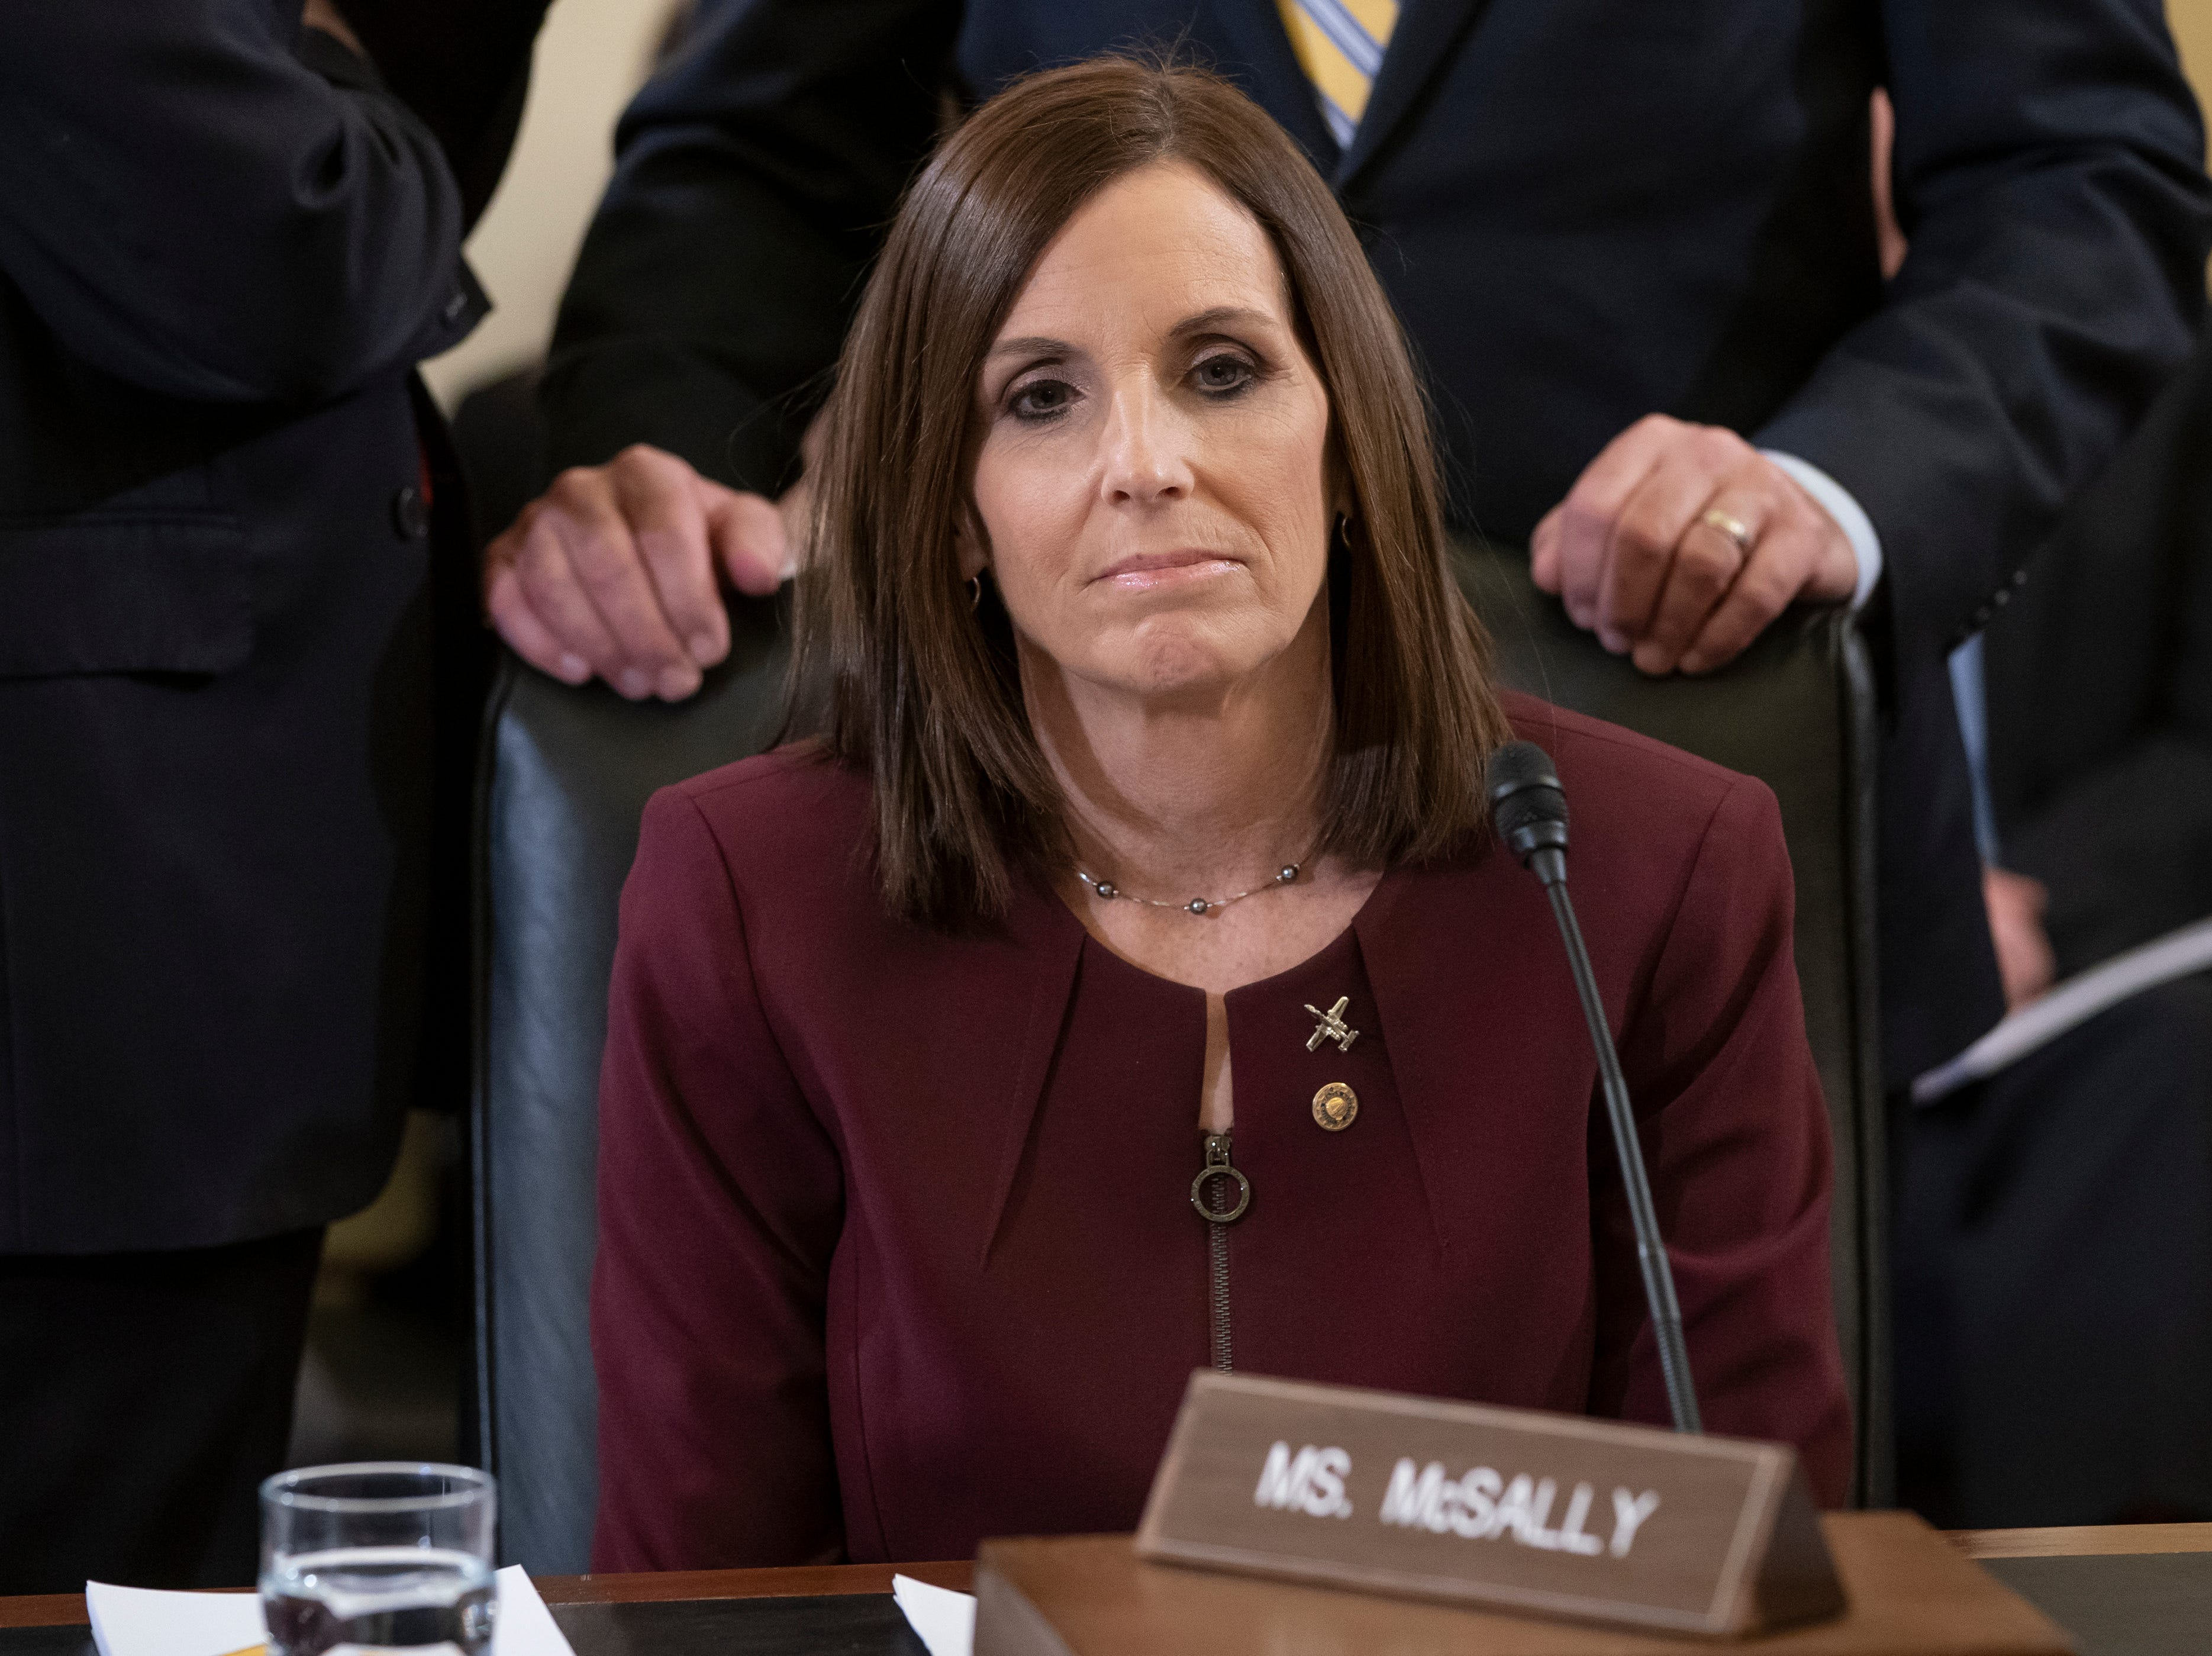 Before a hearing by the Senate Armed Services Subcommittee on Personnel about prevention and response to sexual assault in the military, Sen. Martha McSally, R-Ariz., prepares to recount her own experience while serving as a colonel in the Air Force, on Capitol Hill in Washington, Wednesday, March 6, 2019. McSally, the first female fighter pilot to fly in combat, says she was raped in the Air Force by superior officer. (AP Photo/J. Scott Applewhite)